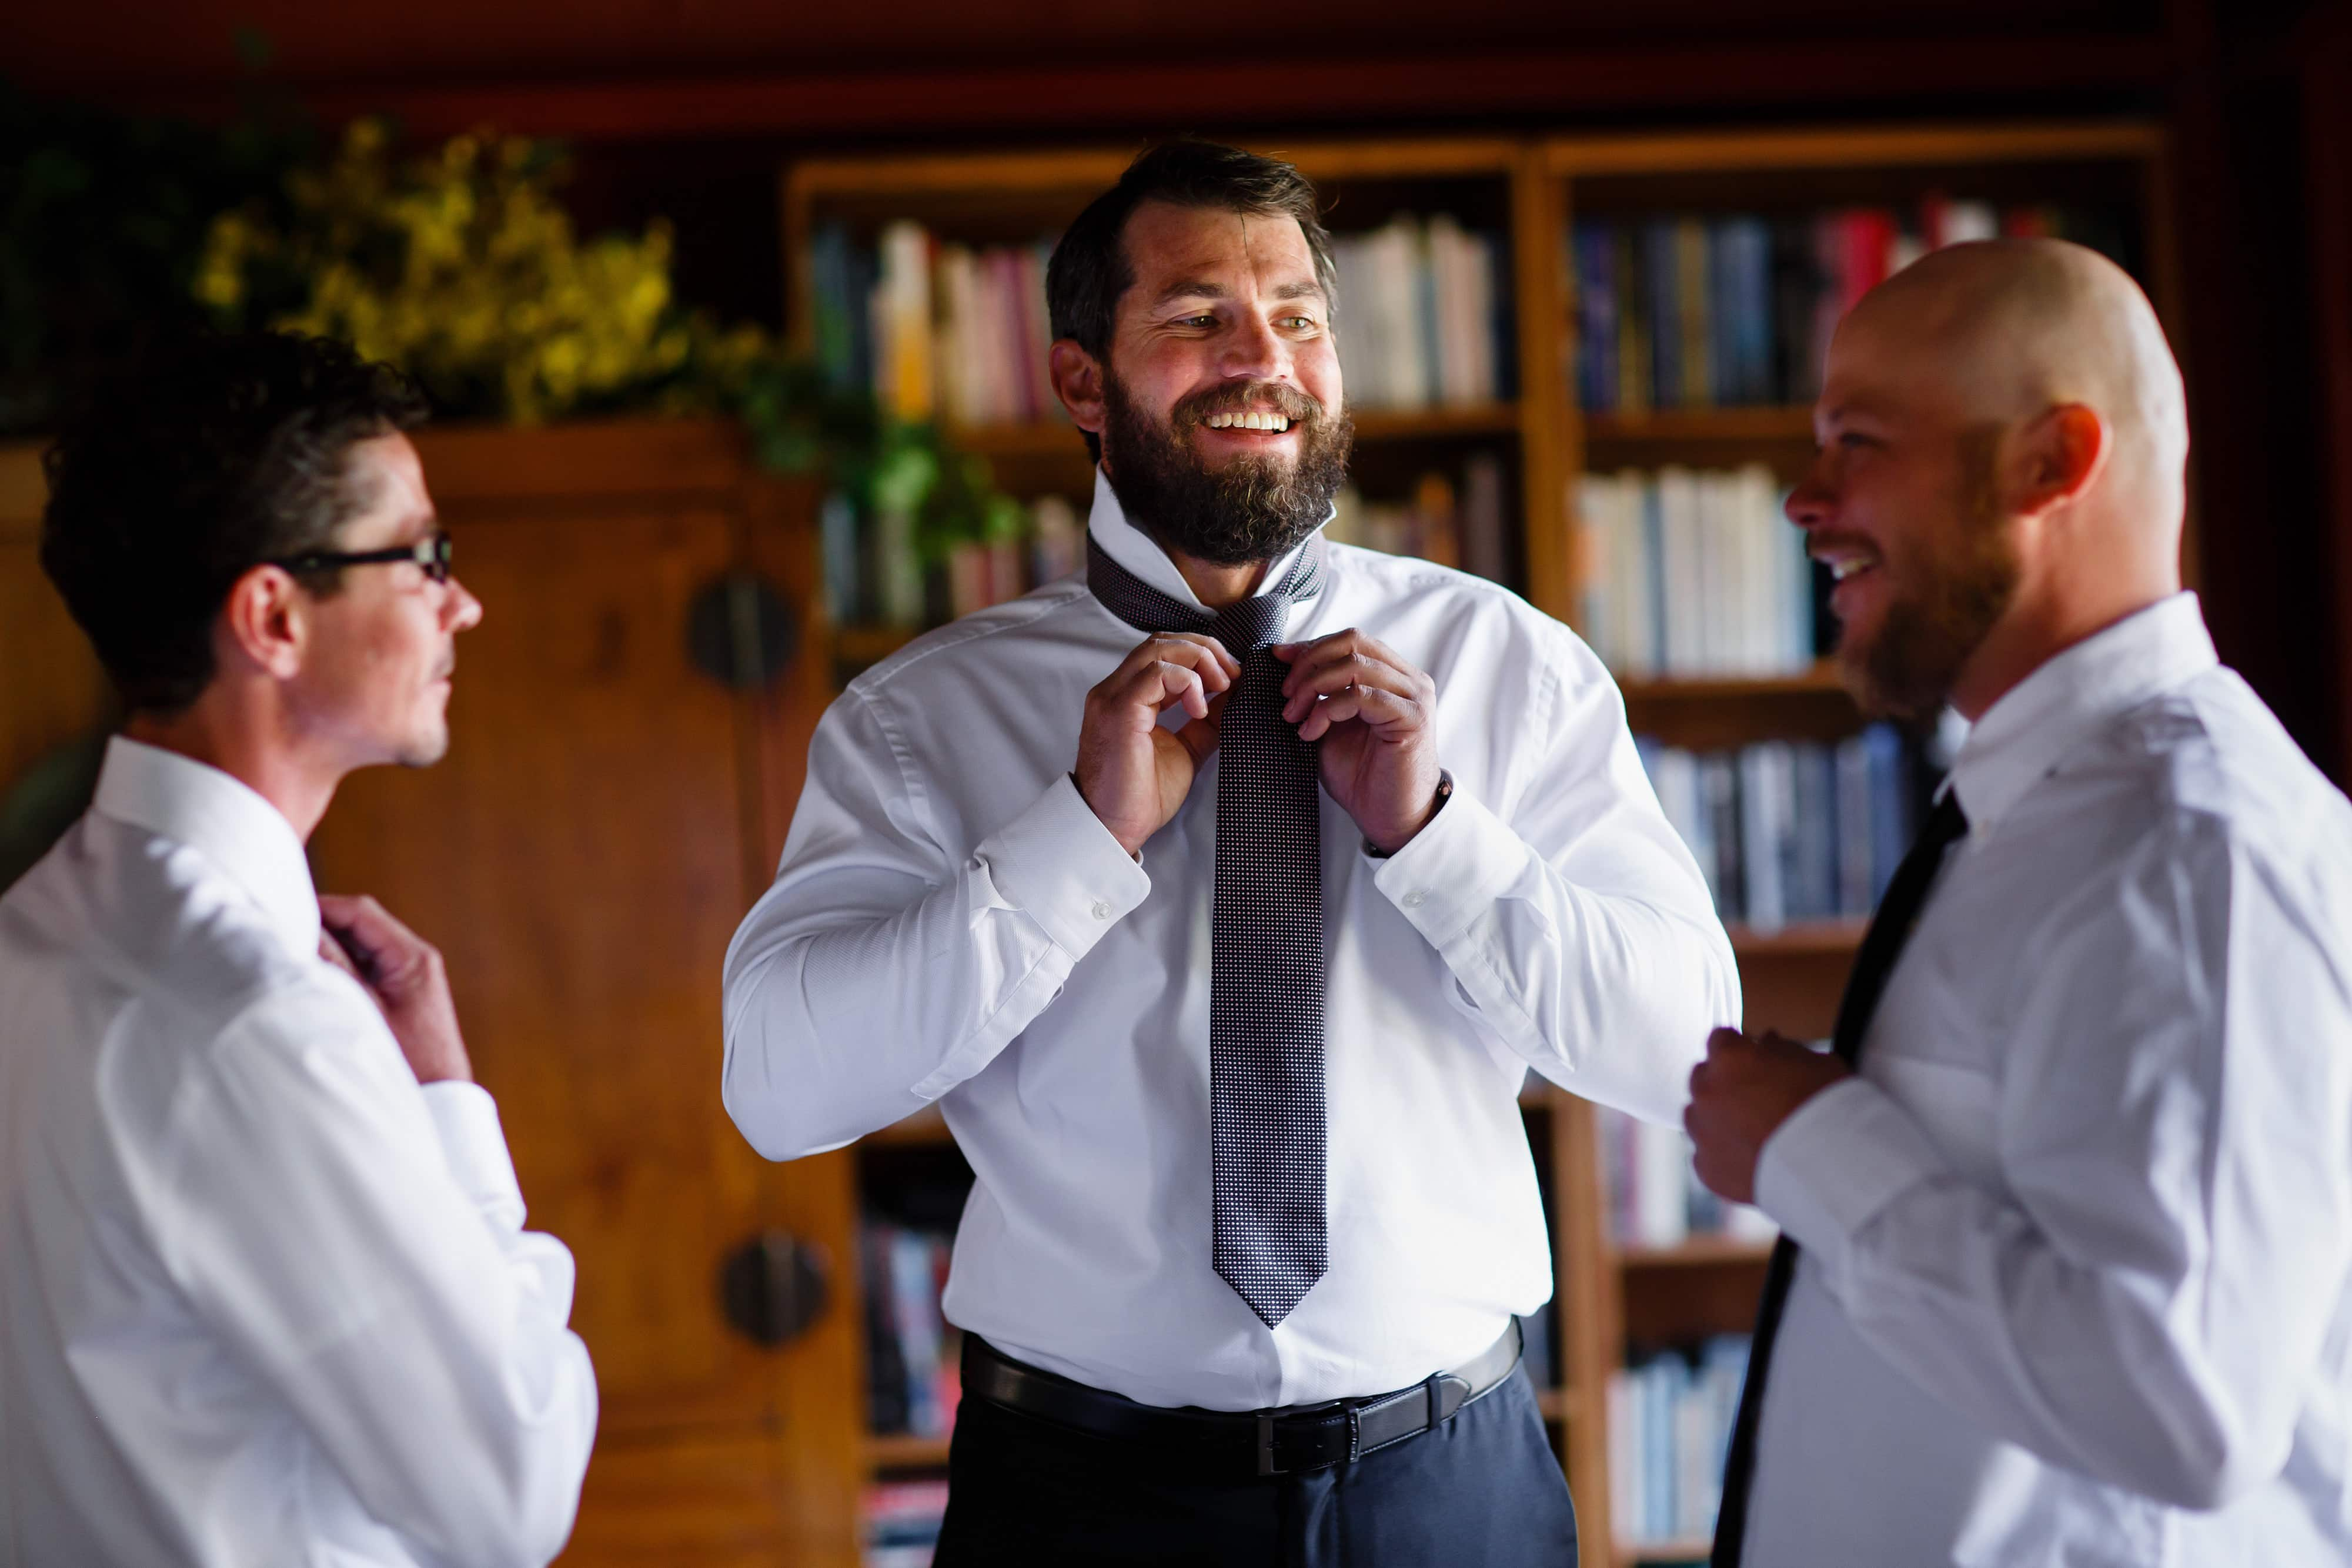 The groom gets ready with his groomsmen in the welcome center at Snowmass Cottages